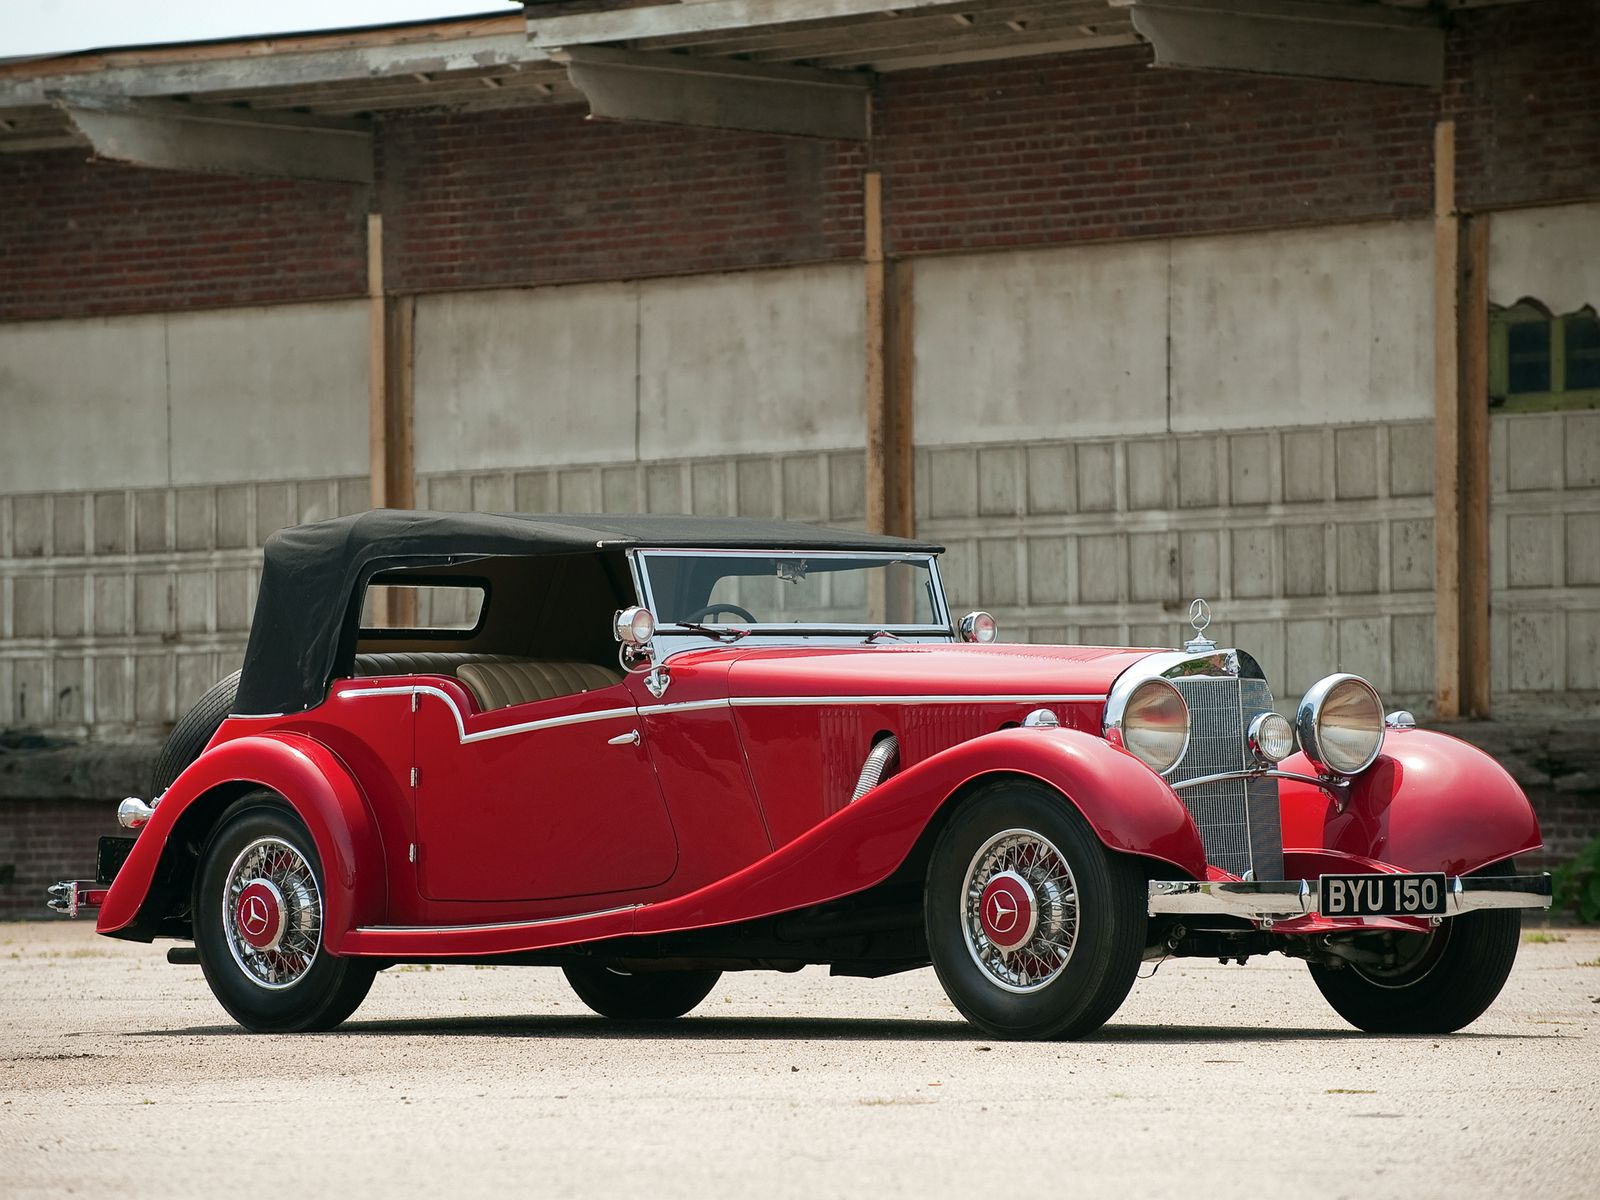 VOITURES DE LEGENDE (1132) : MERCEDES-BENZ  500 K (W29) By MAYFAIR - 1934